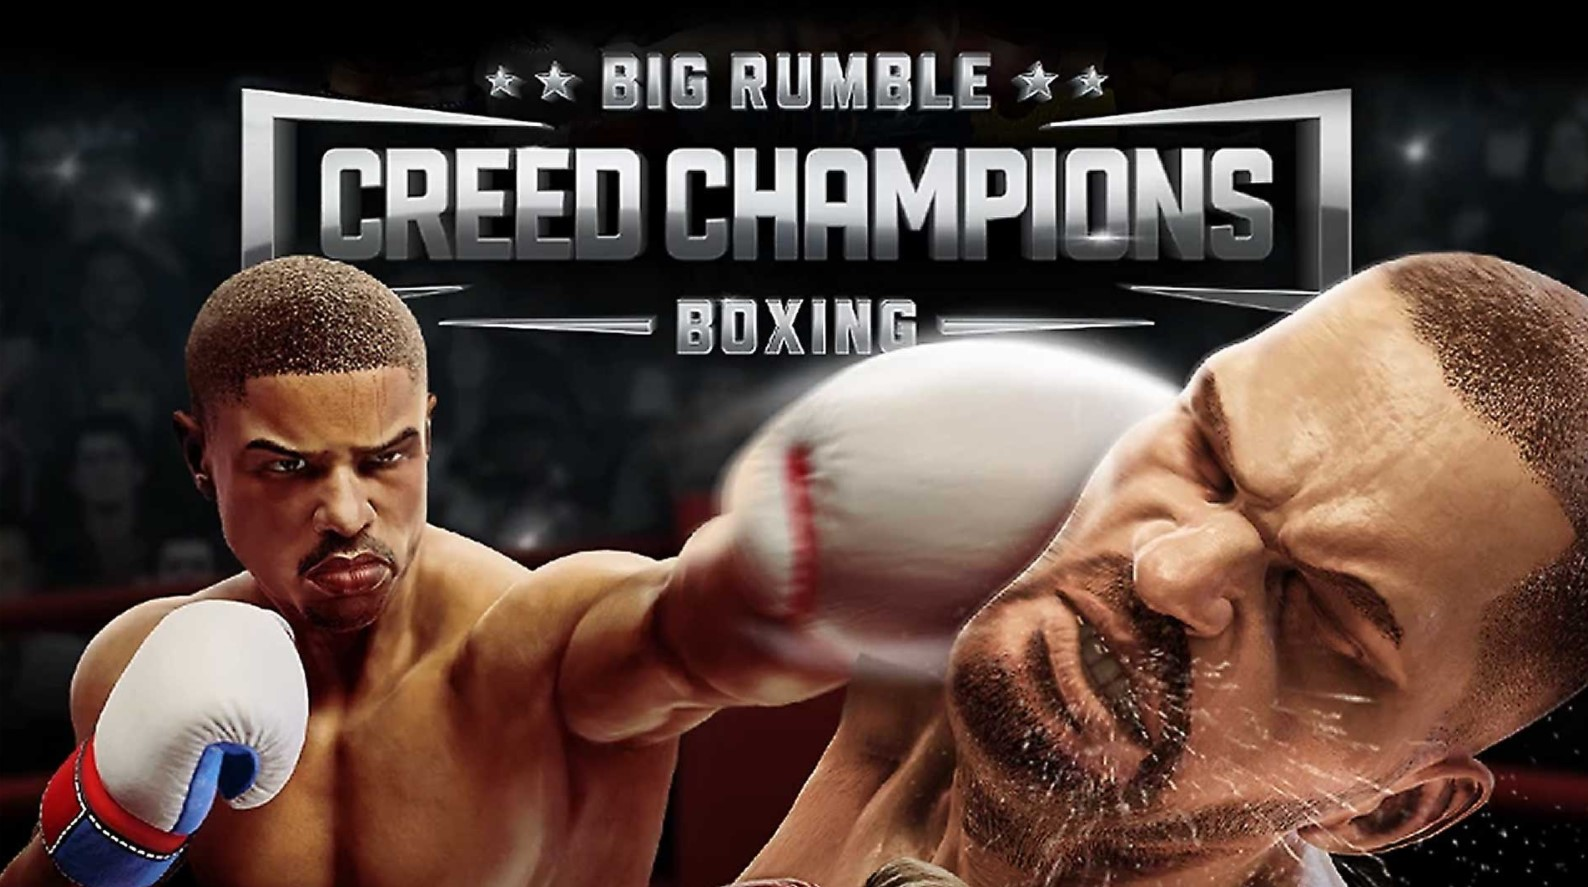 Big Rumble Boxing Creed Champions PC Version Full Game Free Download - Hut Mobile